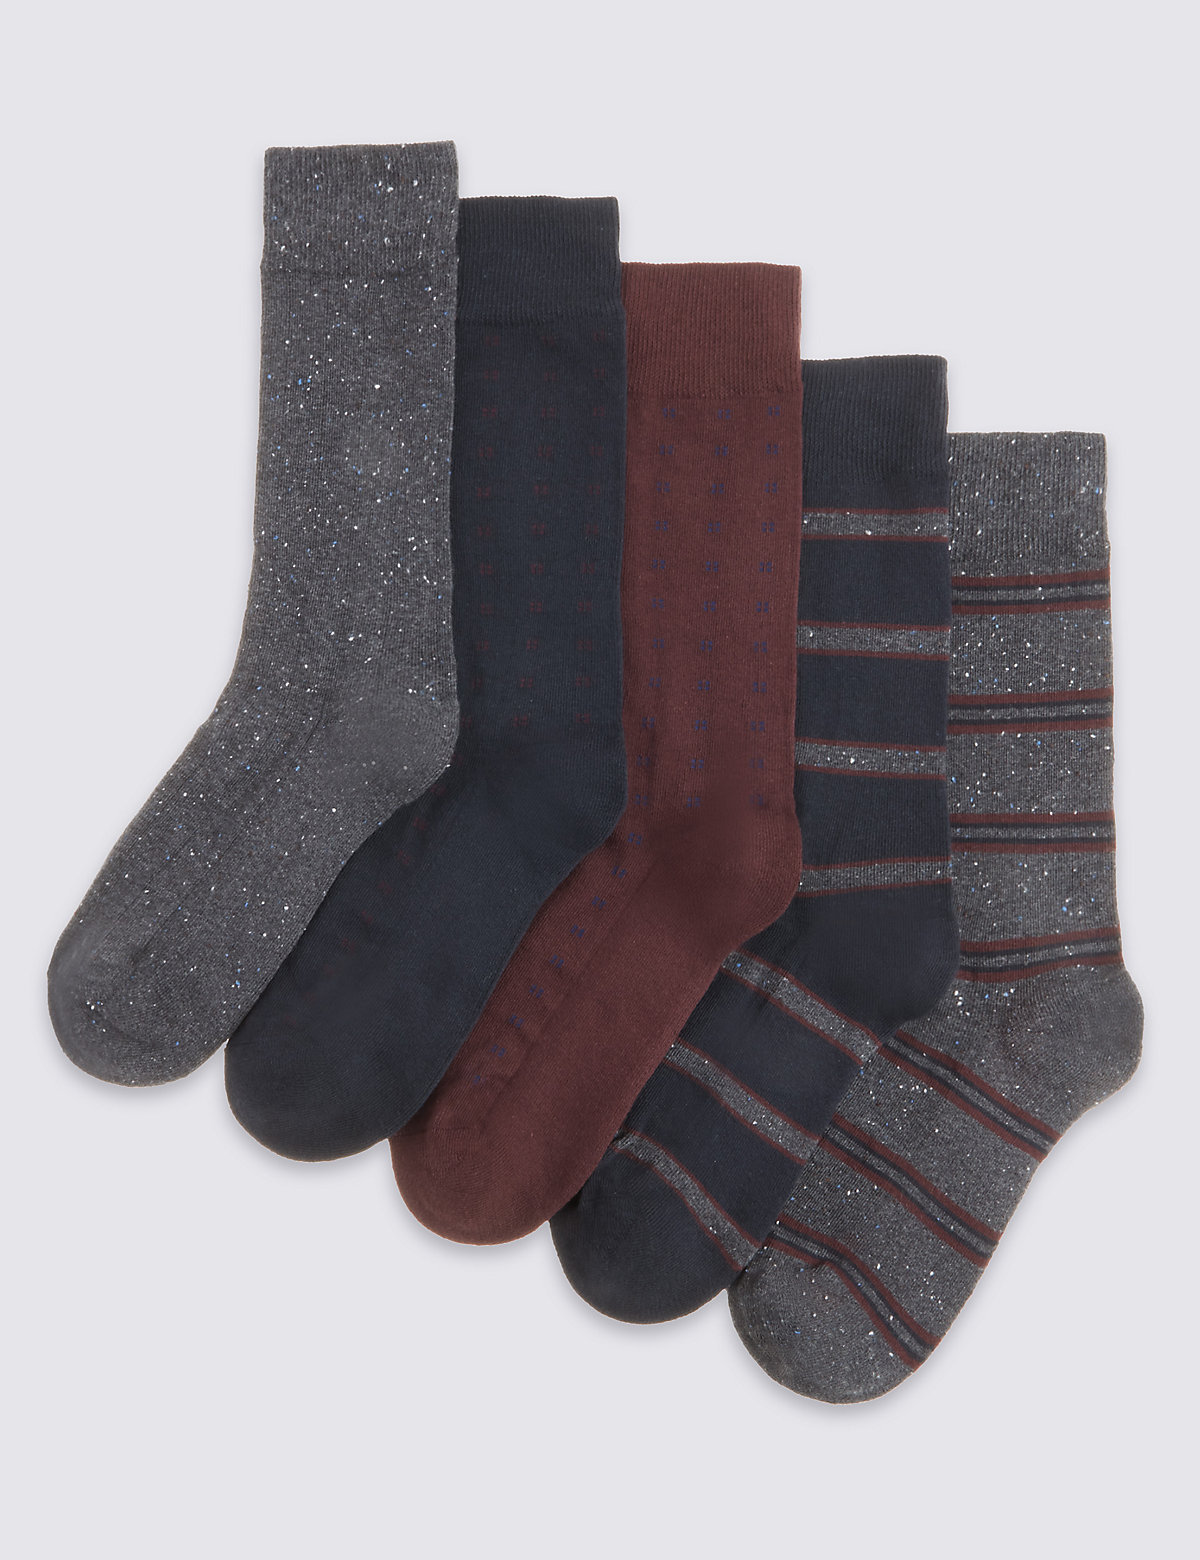 Image of 5 Pairs of Freshfeet Cotton Rich Socks